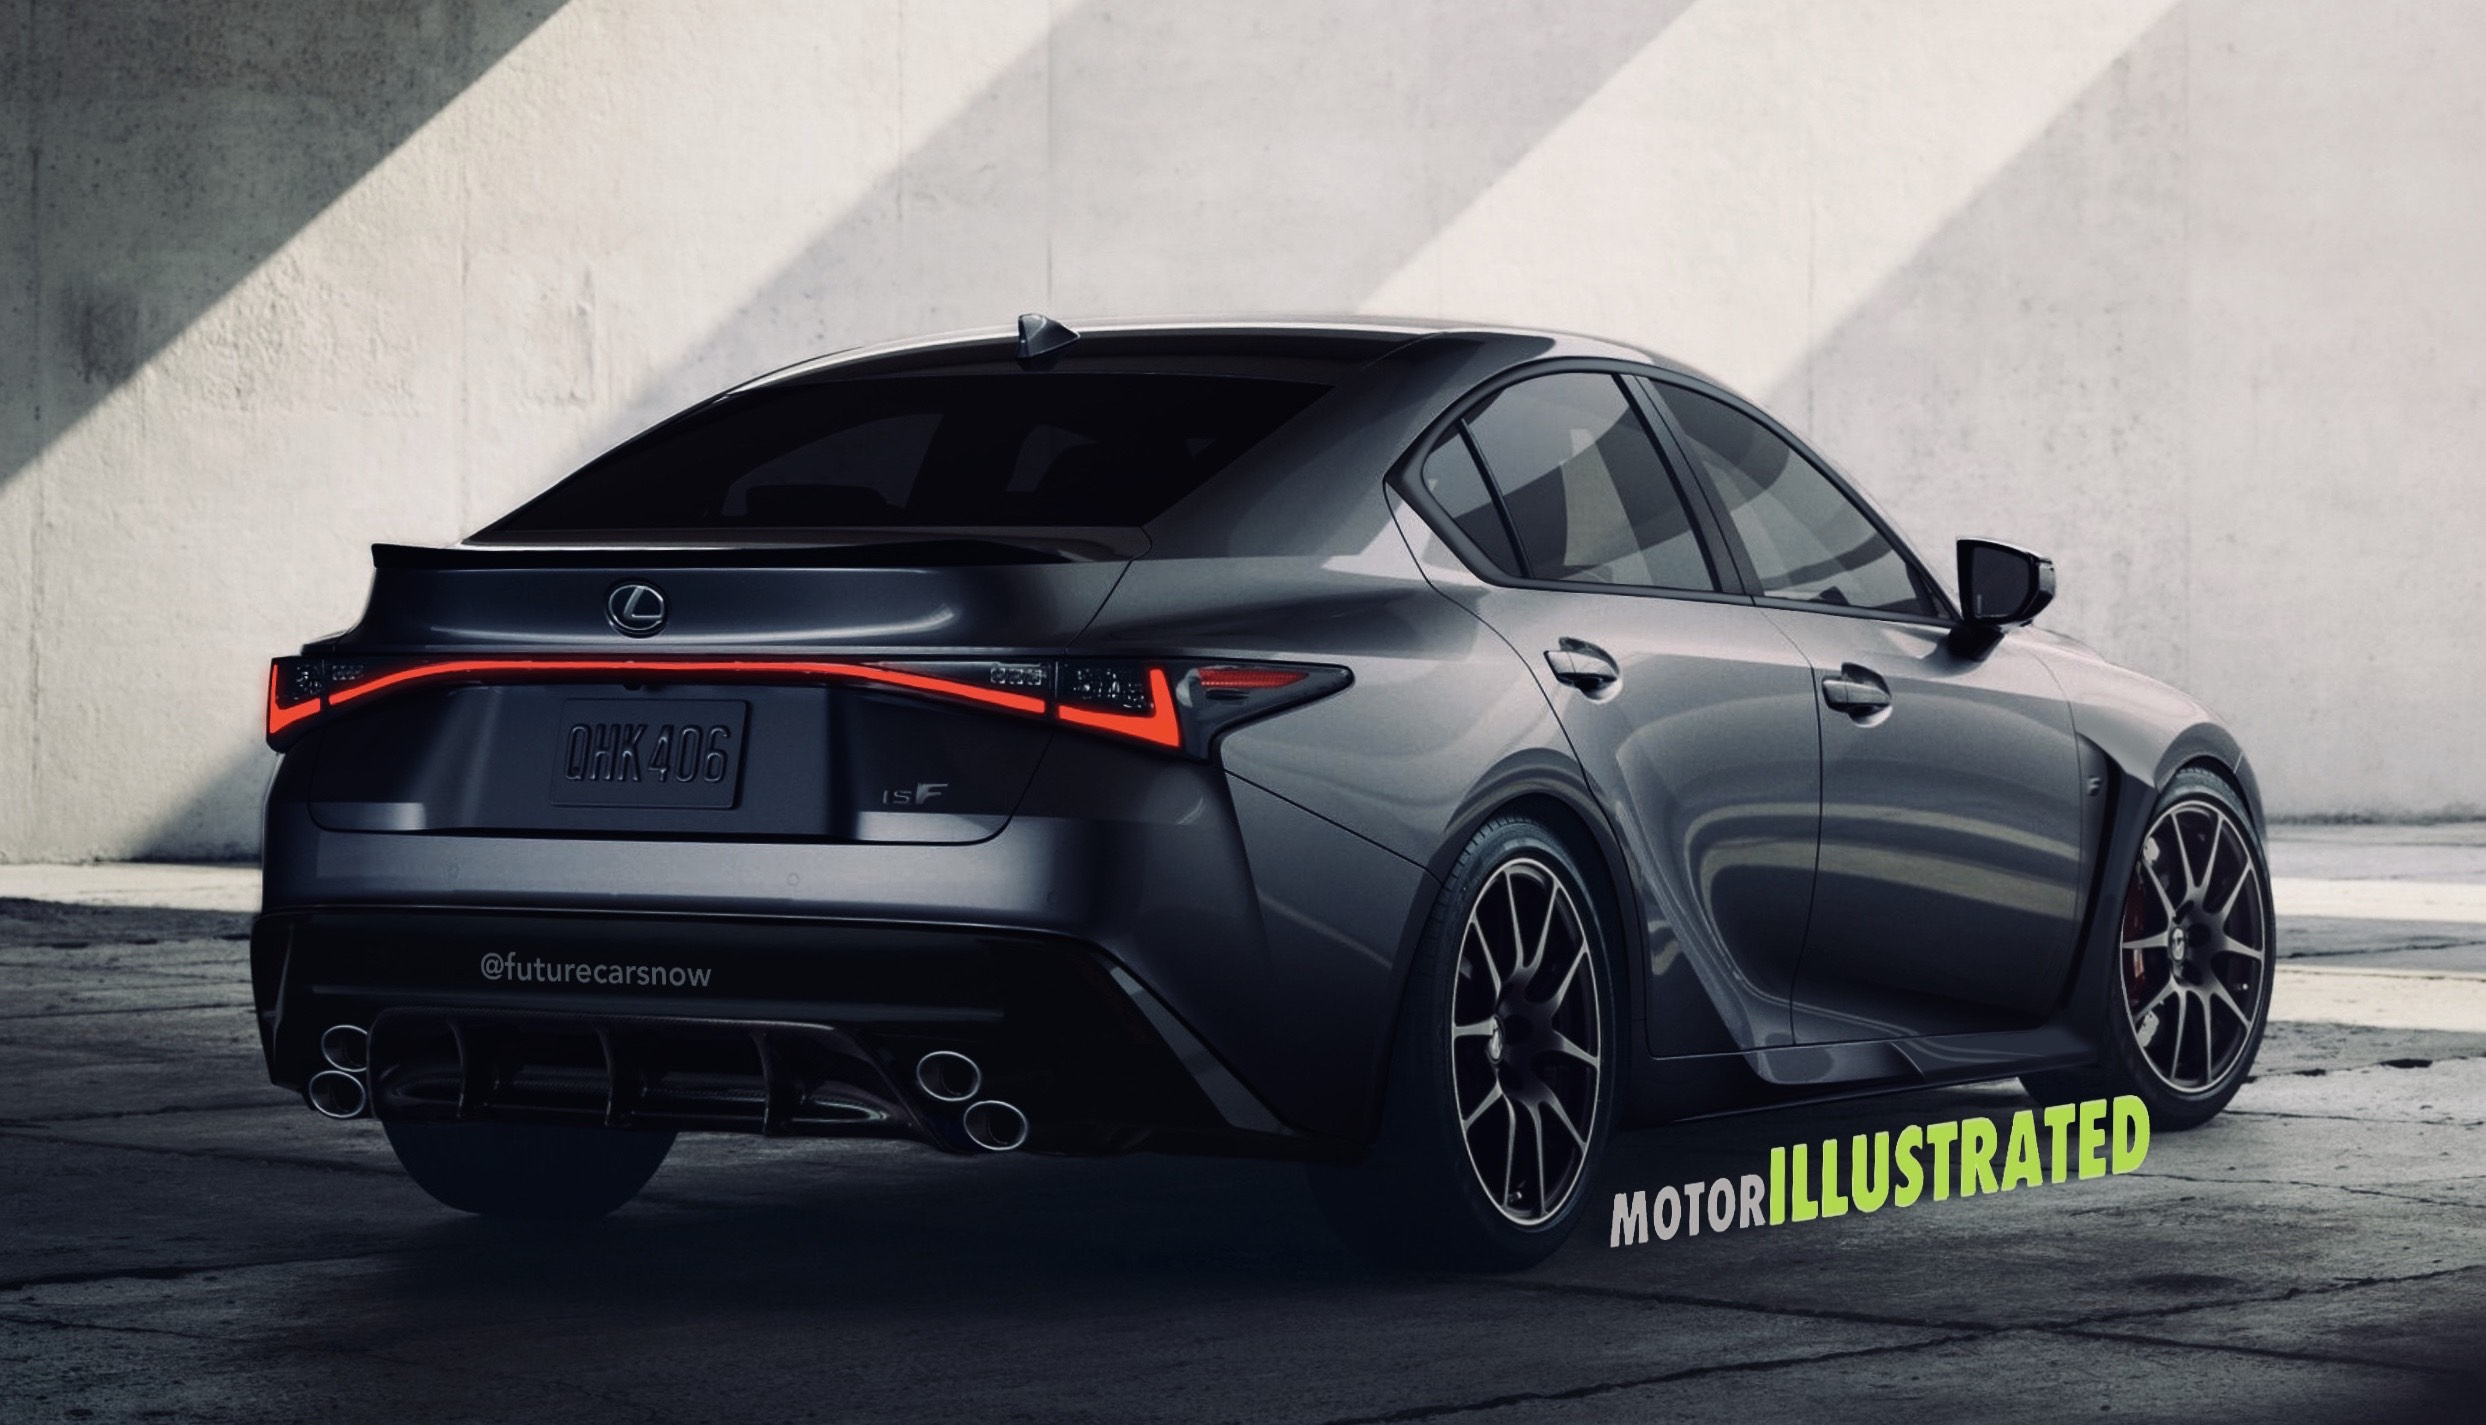 2021 Lexus IS F rendering